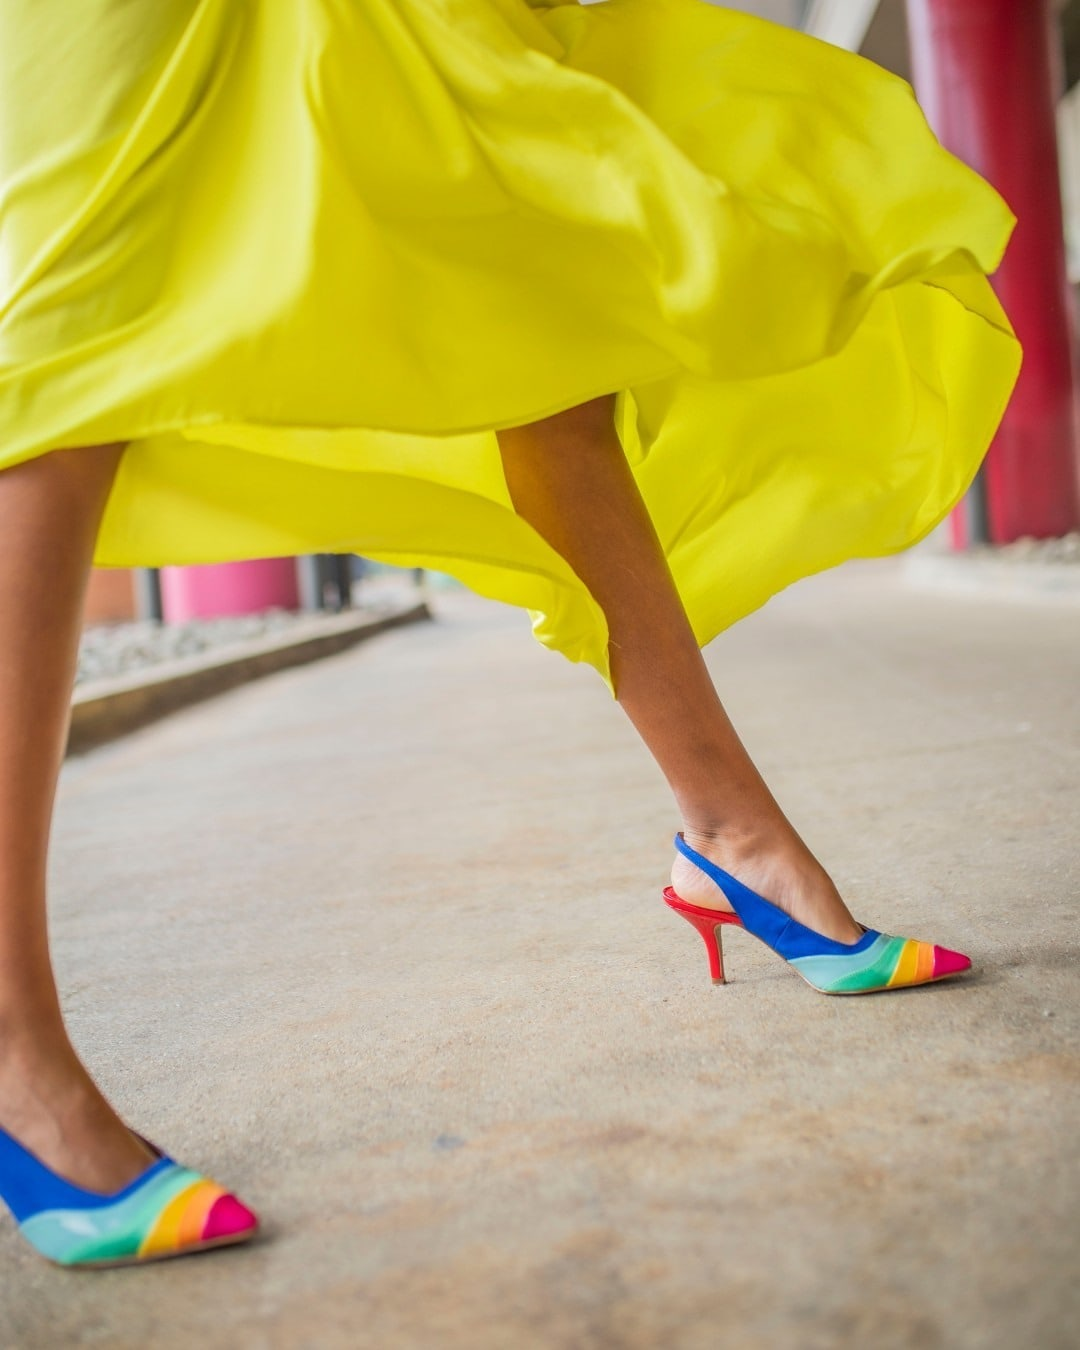 Eye-catching rainbow stripes add a vibrant touch to a pointy-toe sling-back pump that's made even more enticing with its cushy, memory foam footbed